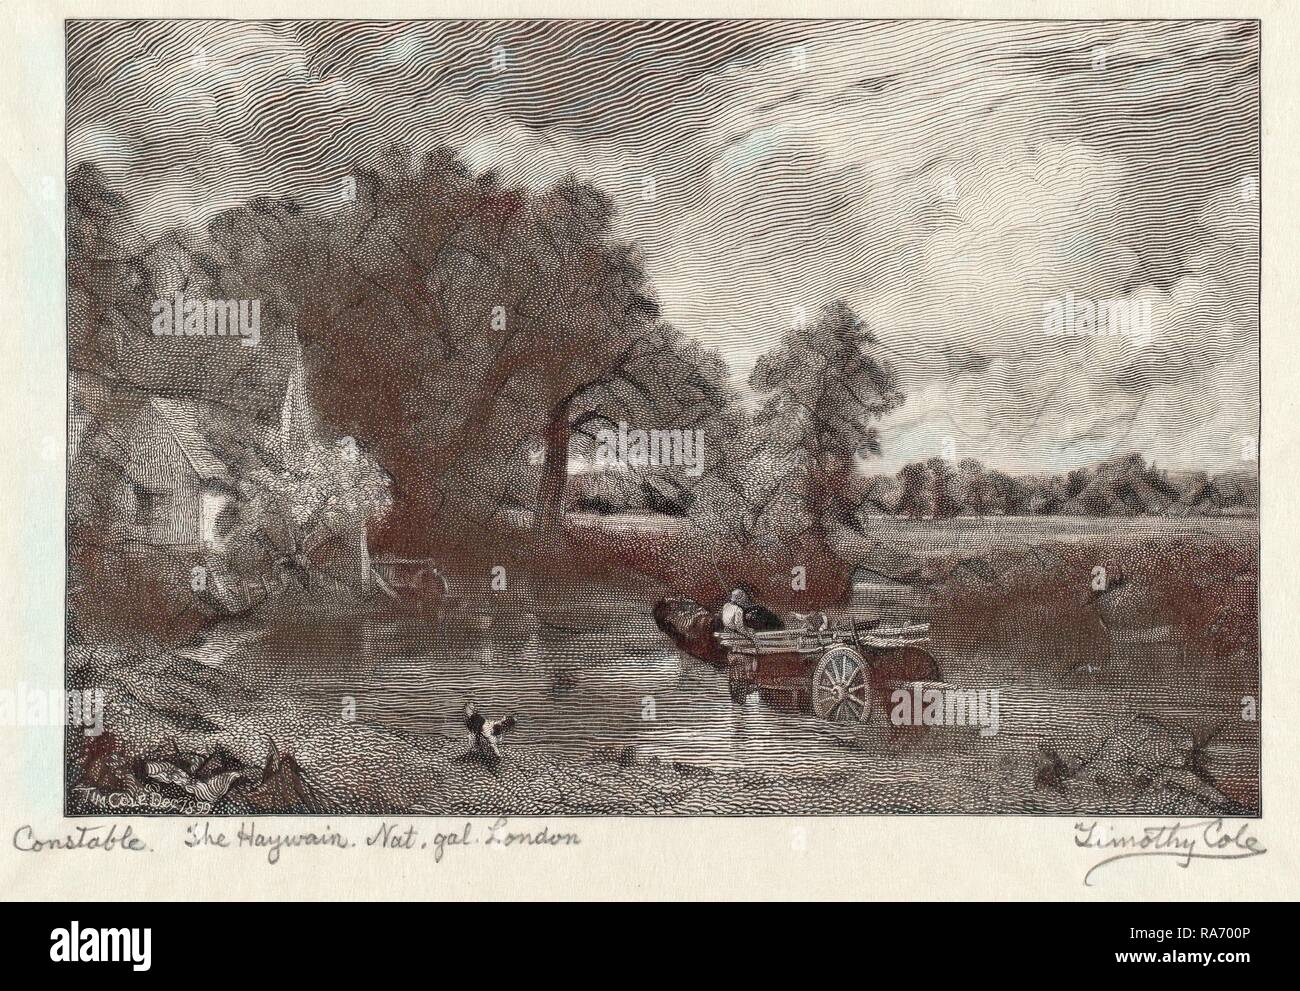 Timothy Cole after John Constable, The Haywain, American, 1852 - 1931, 1899, wood engraving. Reimagined - Stock Image